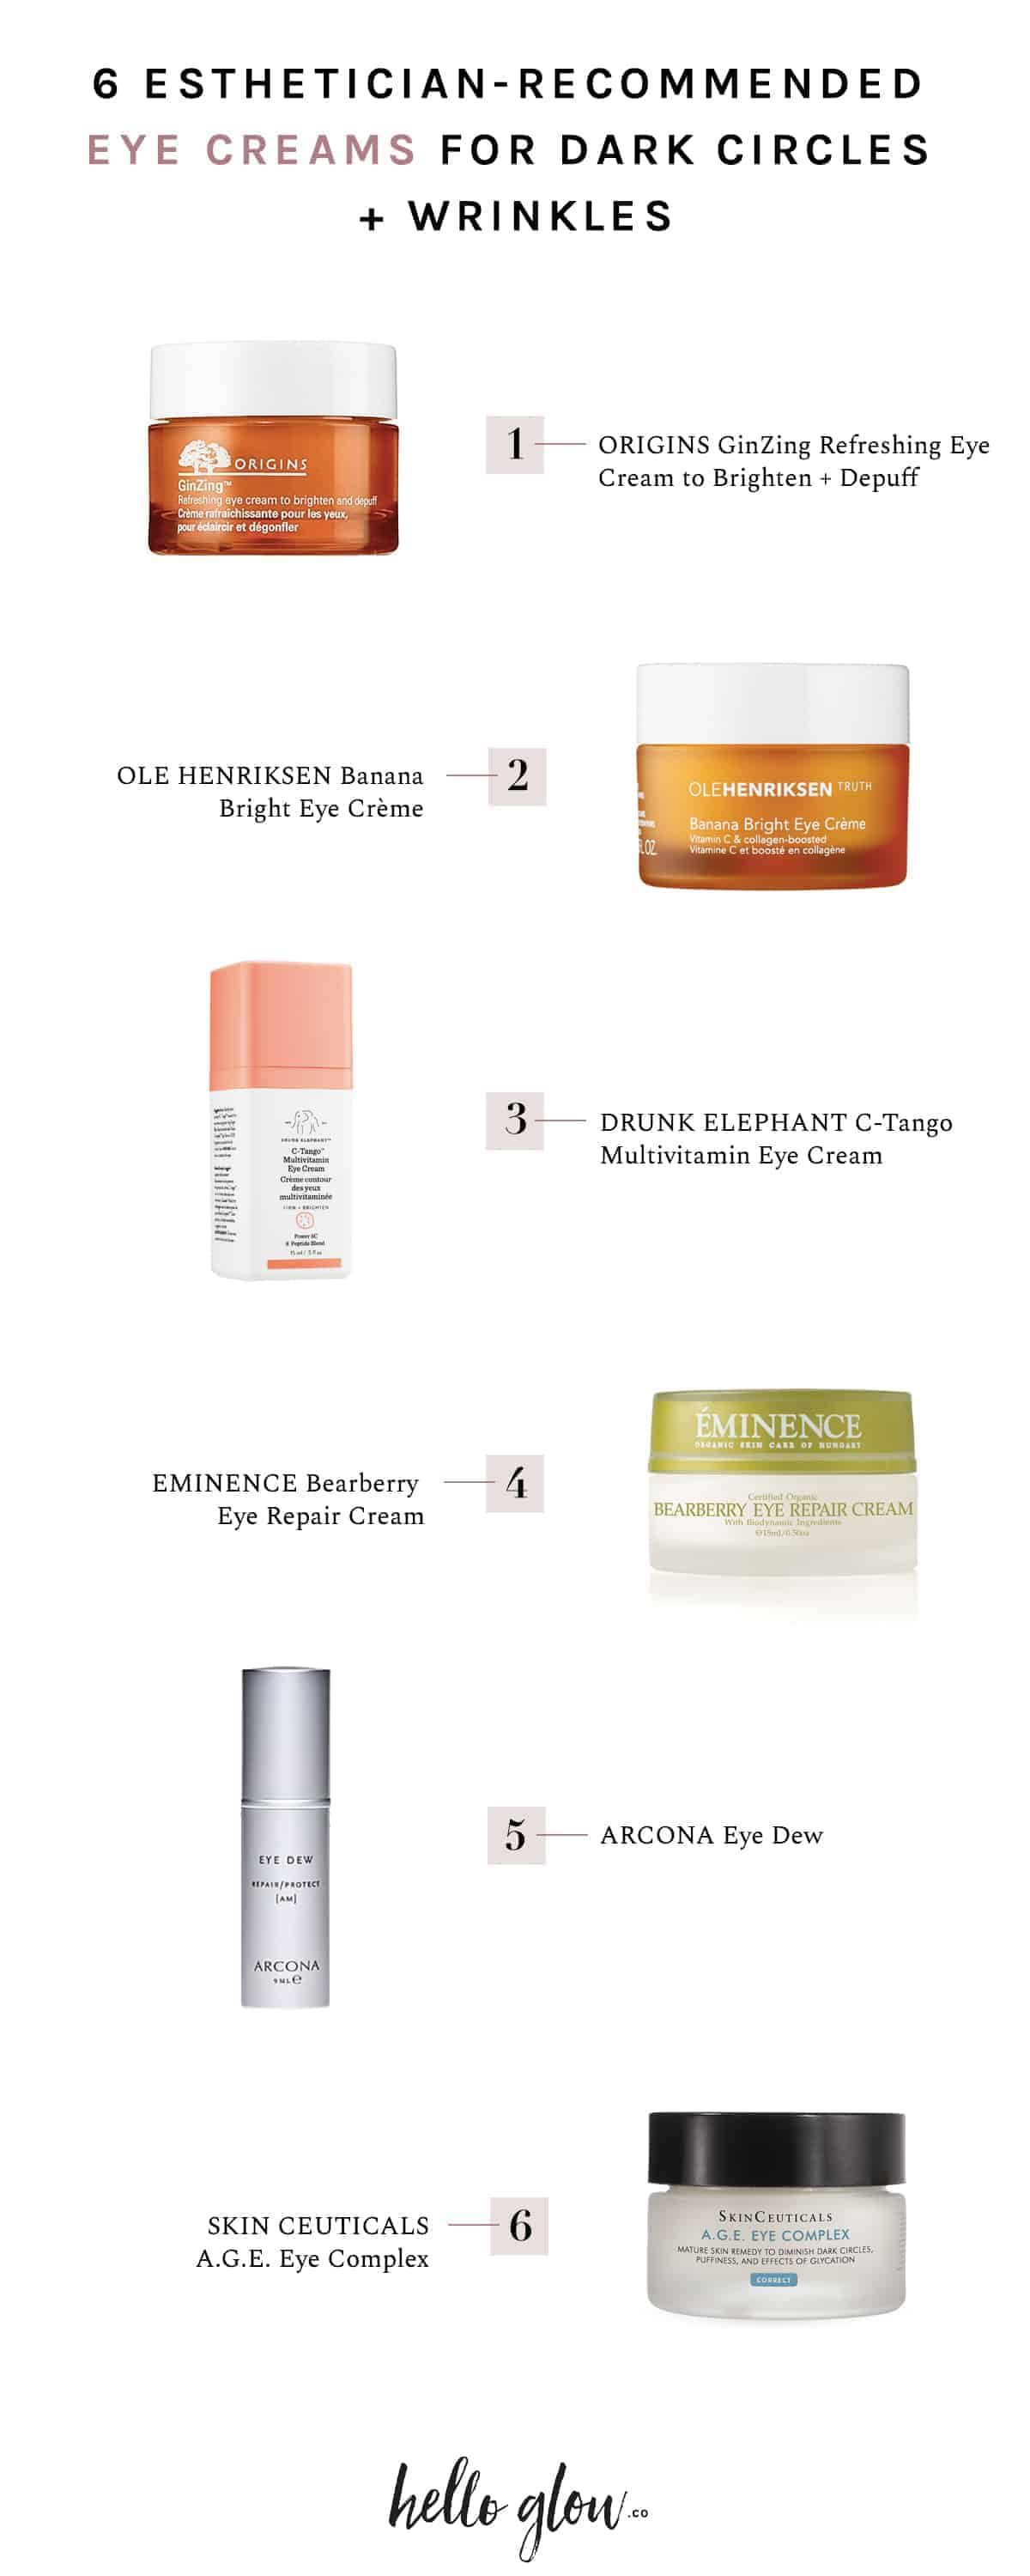 6 Esthetician Recommended Eye Creams For Dark Circles Wrinkles